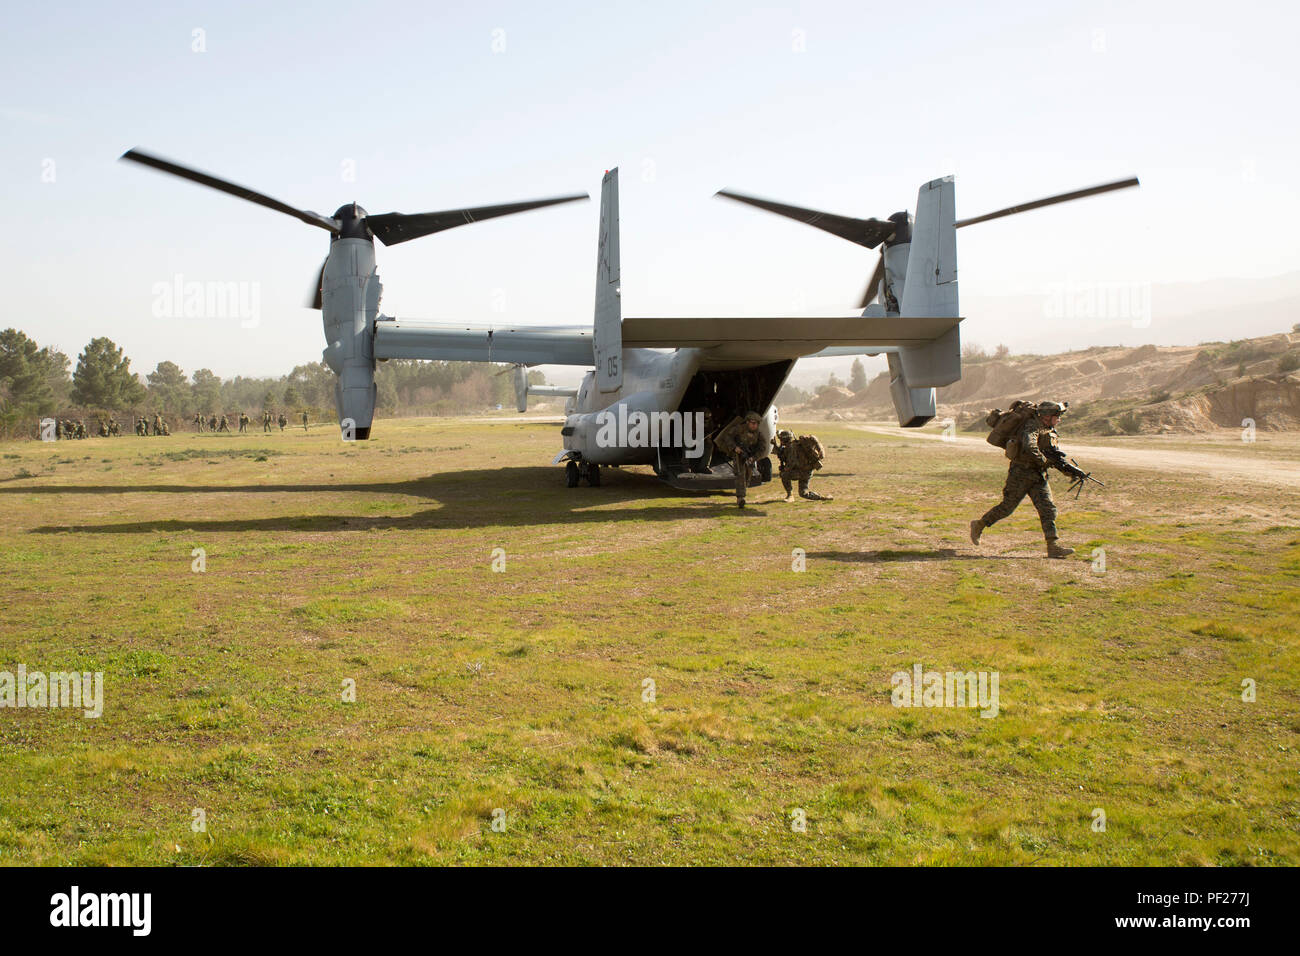 U.S. Marines and the Portuguese Fuzileros disembark from MV-22B Ospreys during an airfield seizure exercise as part of Operation Real Thaw in Seia, Portugal, Feb. 22, 2016. Marines with Special-Purpose Marine Air-Ground Task Force Crisis Response- Africa are continuously conducting bilateral training with partner nations to sustain and improve core mission essential tasks and build interoperability to prepare for real world operations on the African continent. (U.S. Marine Corps photo by Sgt. Tia Nagle) - Stock Image